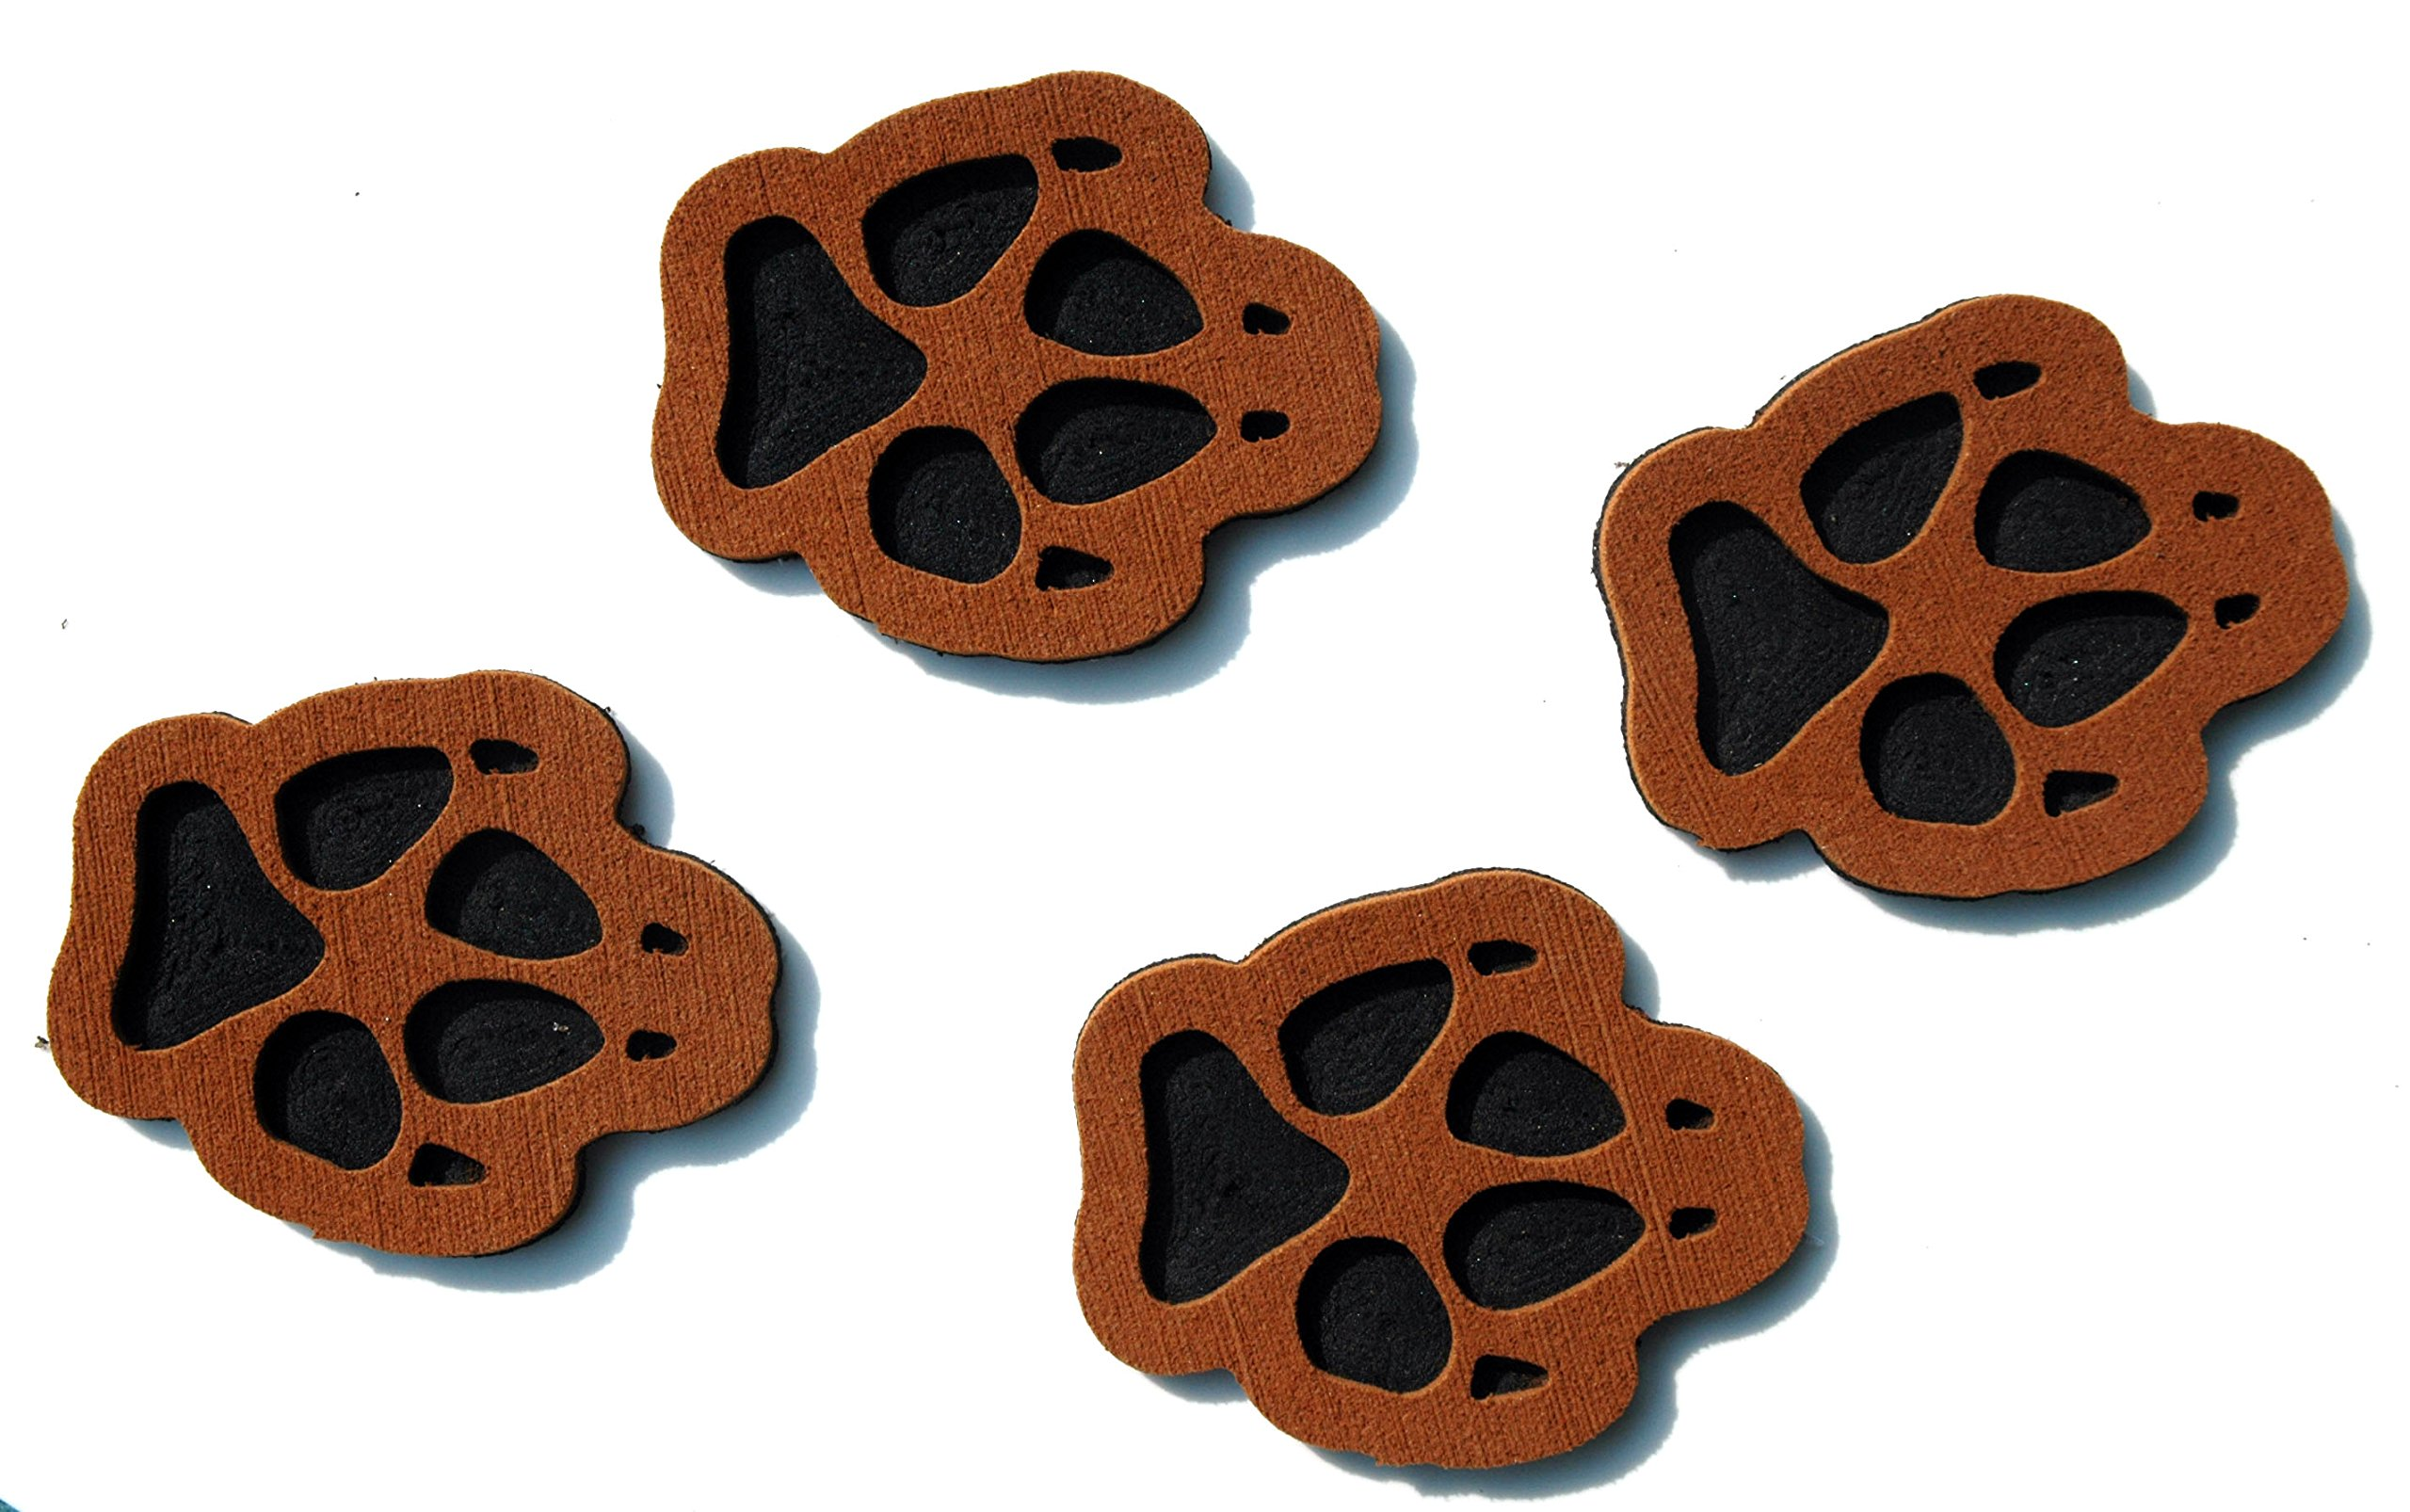 ToeJamR - Snowboard Stomp Pads - 4 PUPPY PAWS - Brown